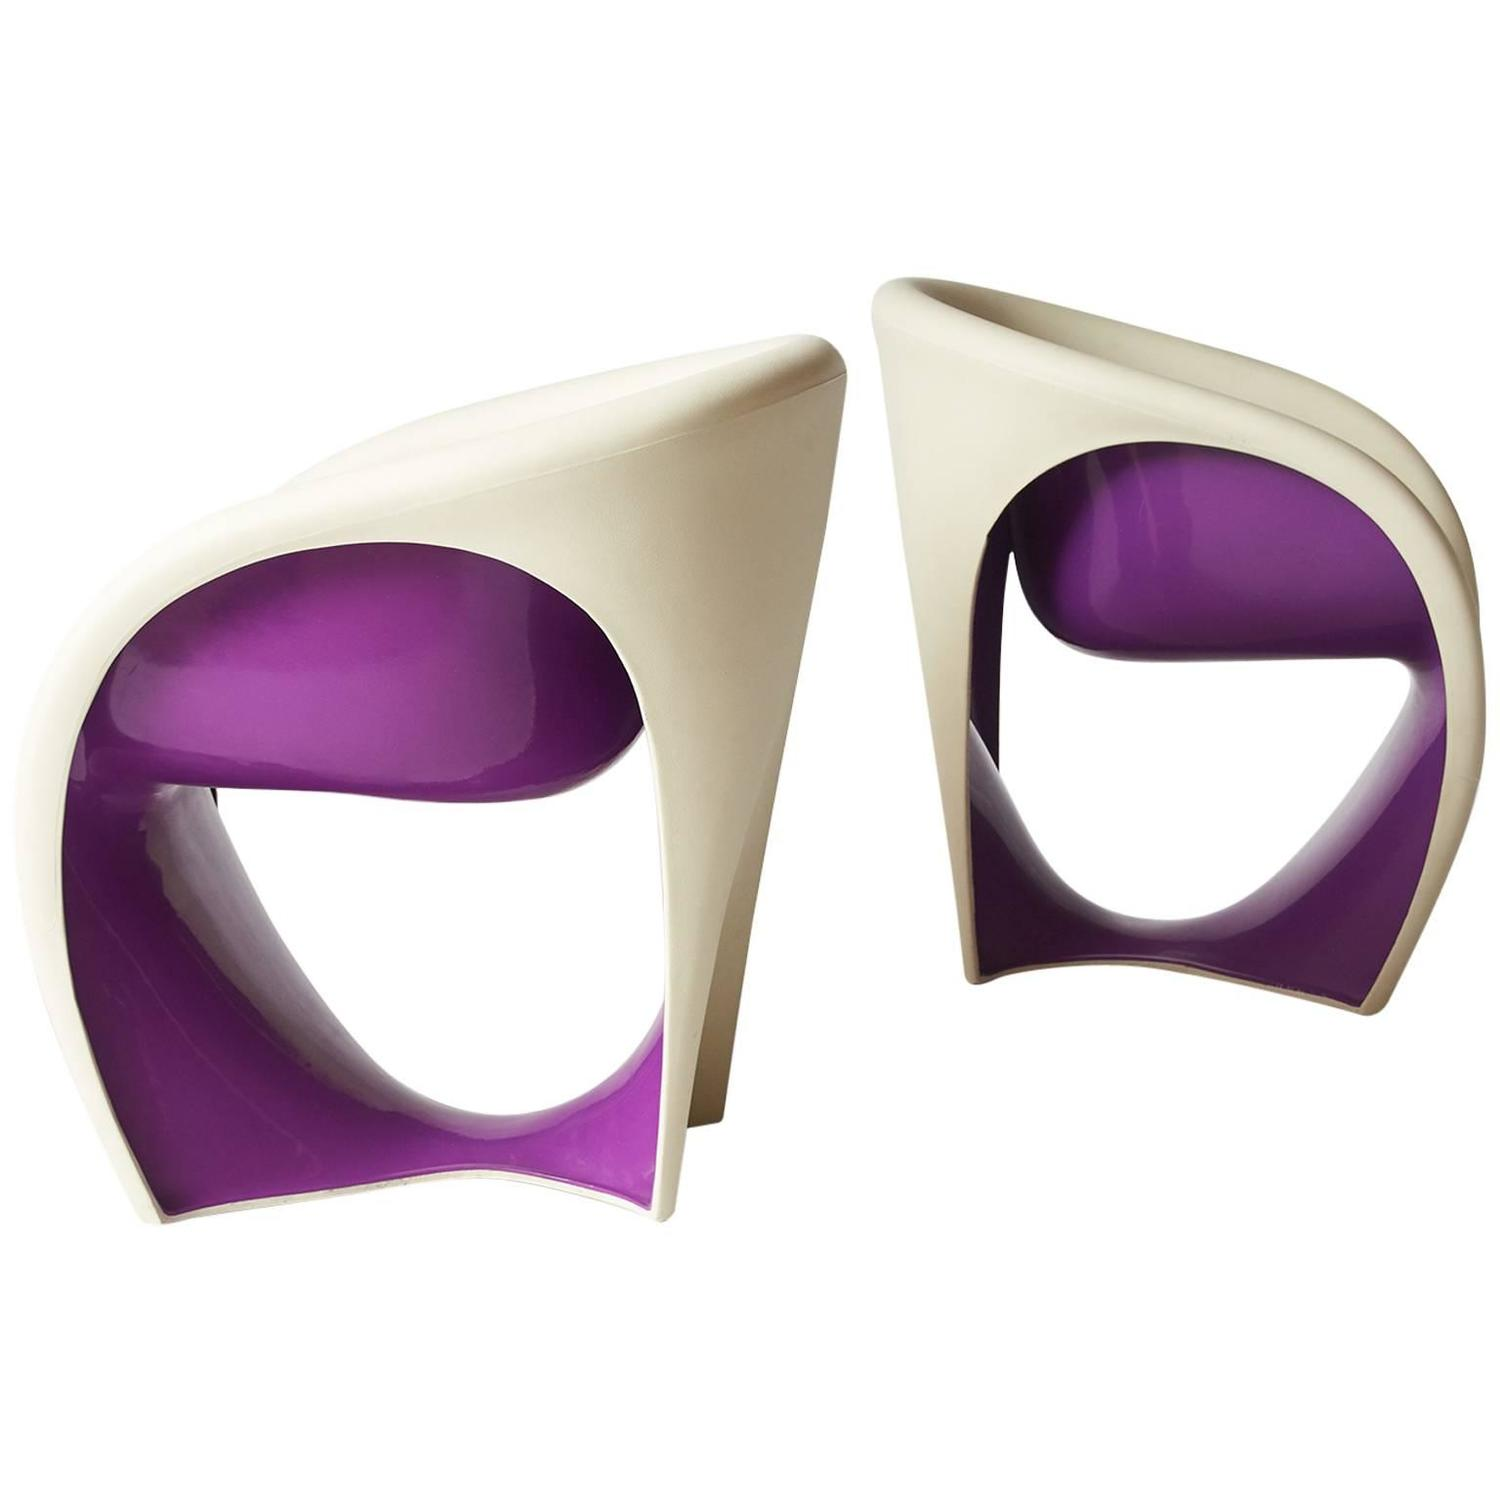 Pair Of Mt 1 Lounge Chairs By Ron Arad For Sale At 1stdibs